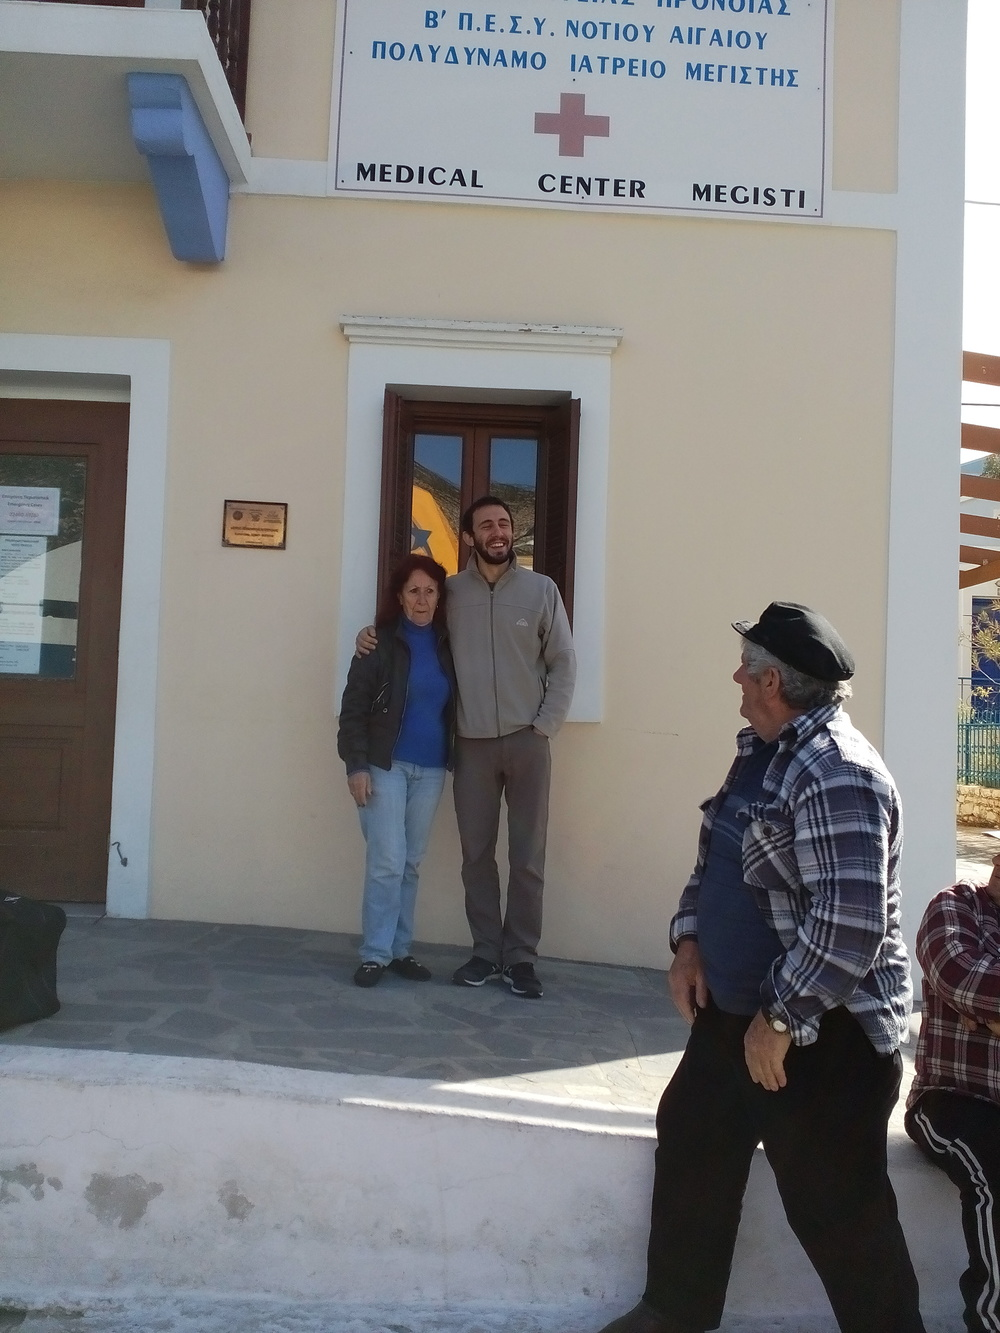 Despina and Yiannis the Doctor outside the Medical Center